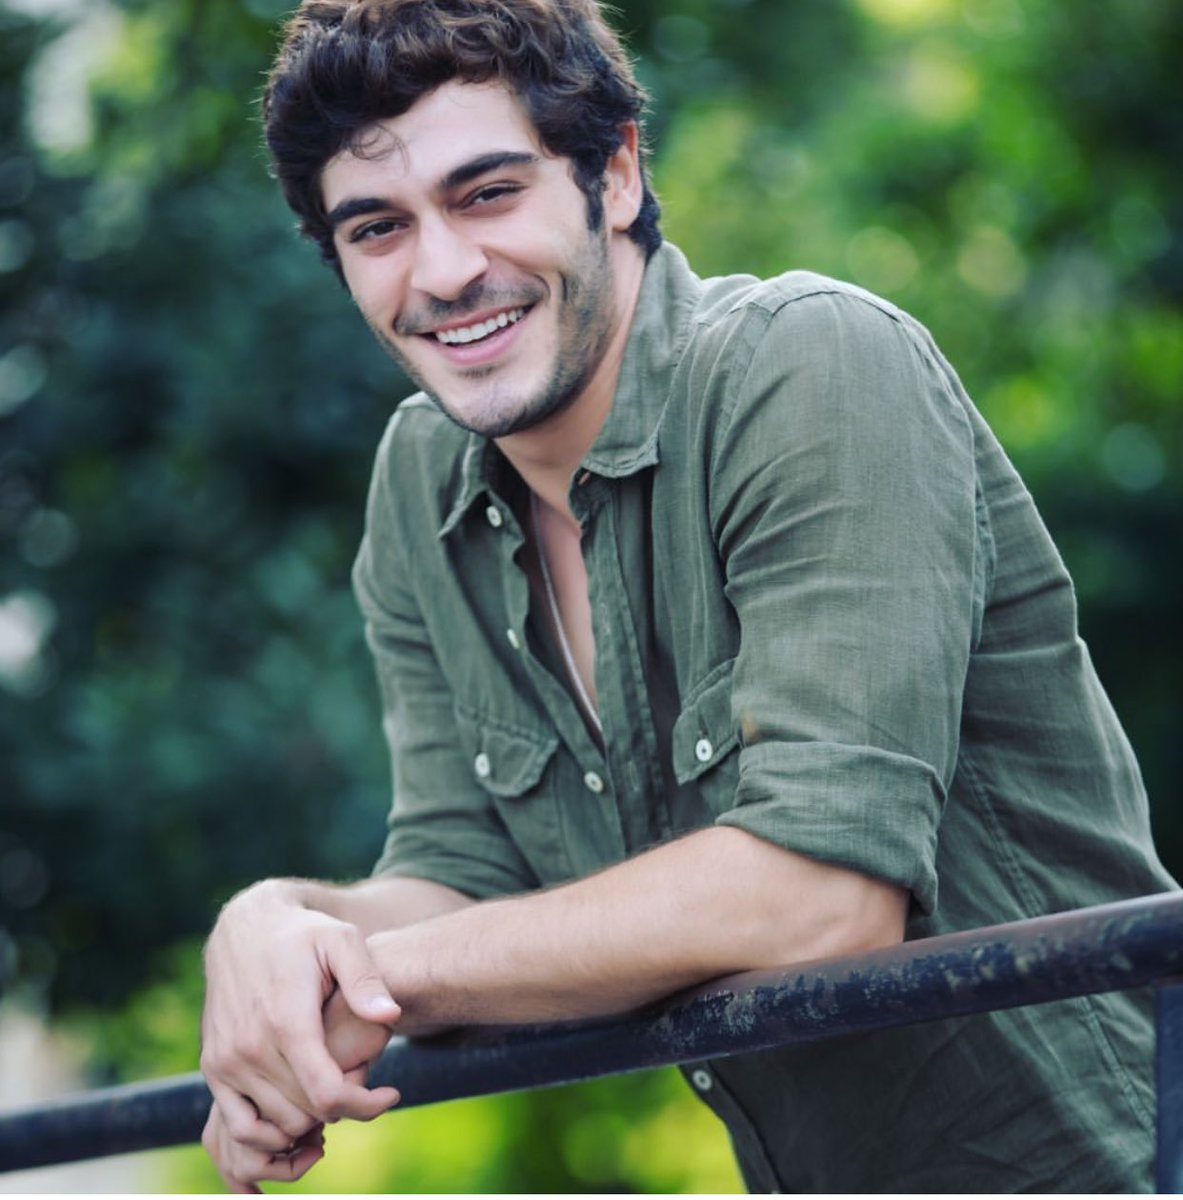 Burak Deniz Bio, Height, Net worth, Age, Family, Girlfriend, Facts